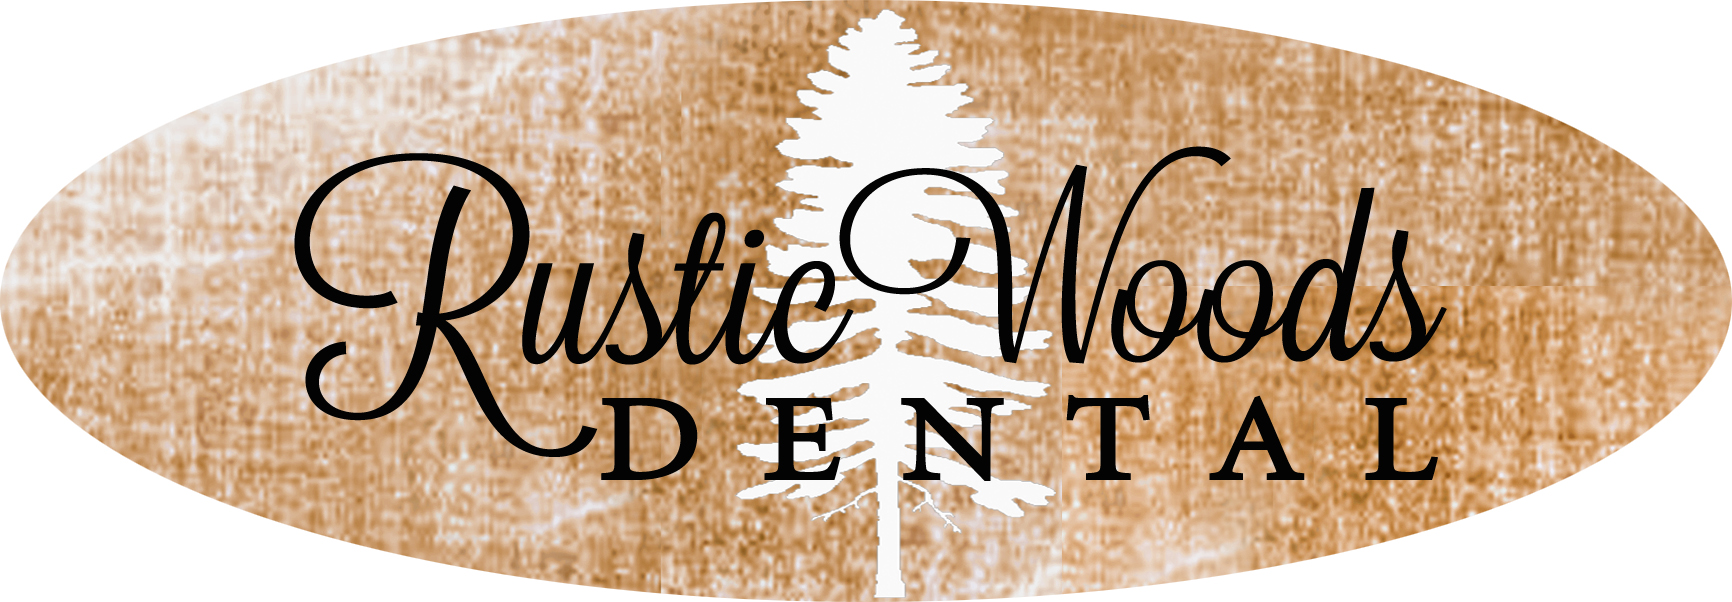 Rustic Woods Dental